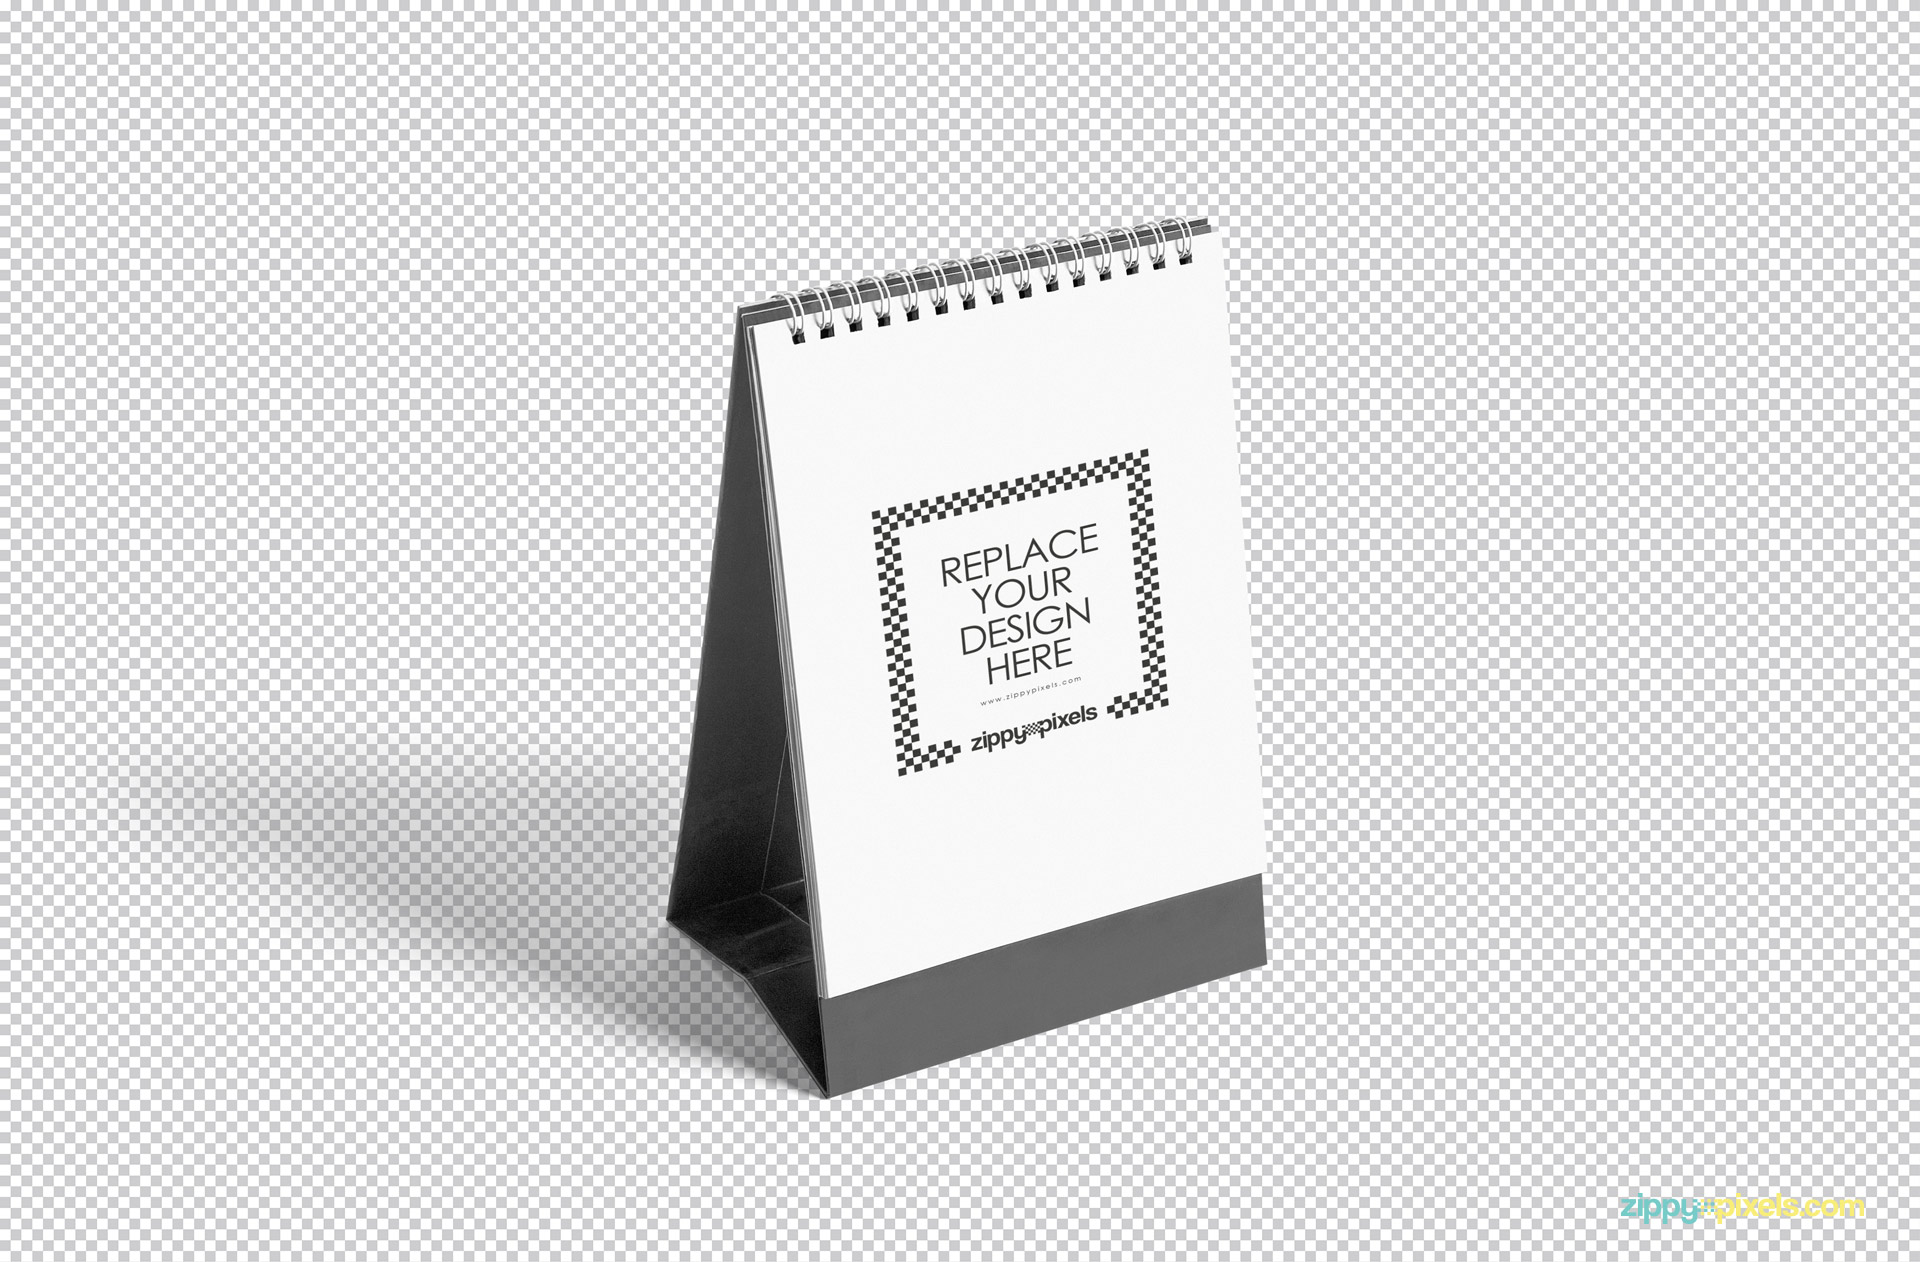 fully customizable desk calendar mockup.